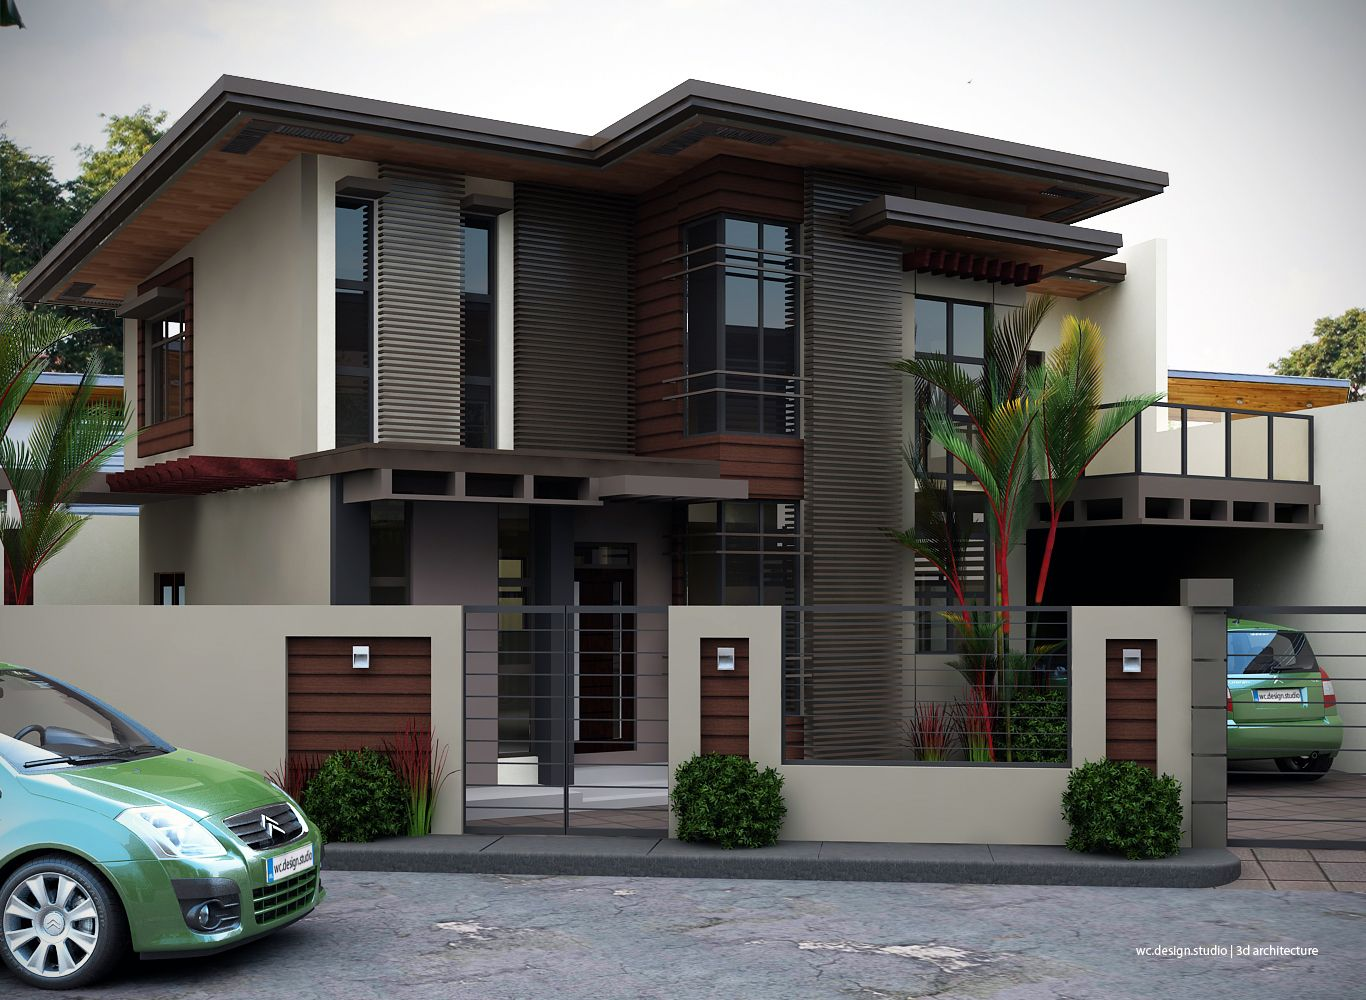 Modern zen house design philippines for Modern zen house designs